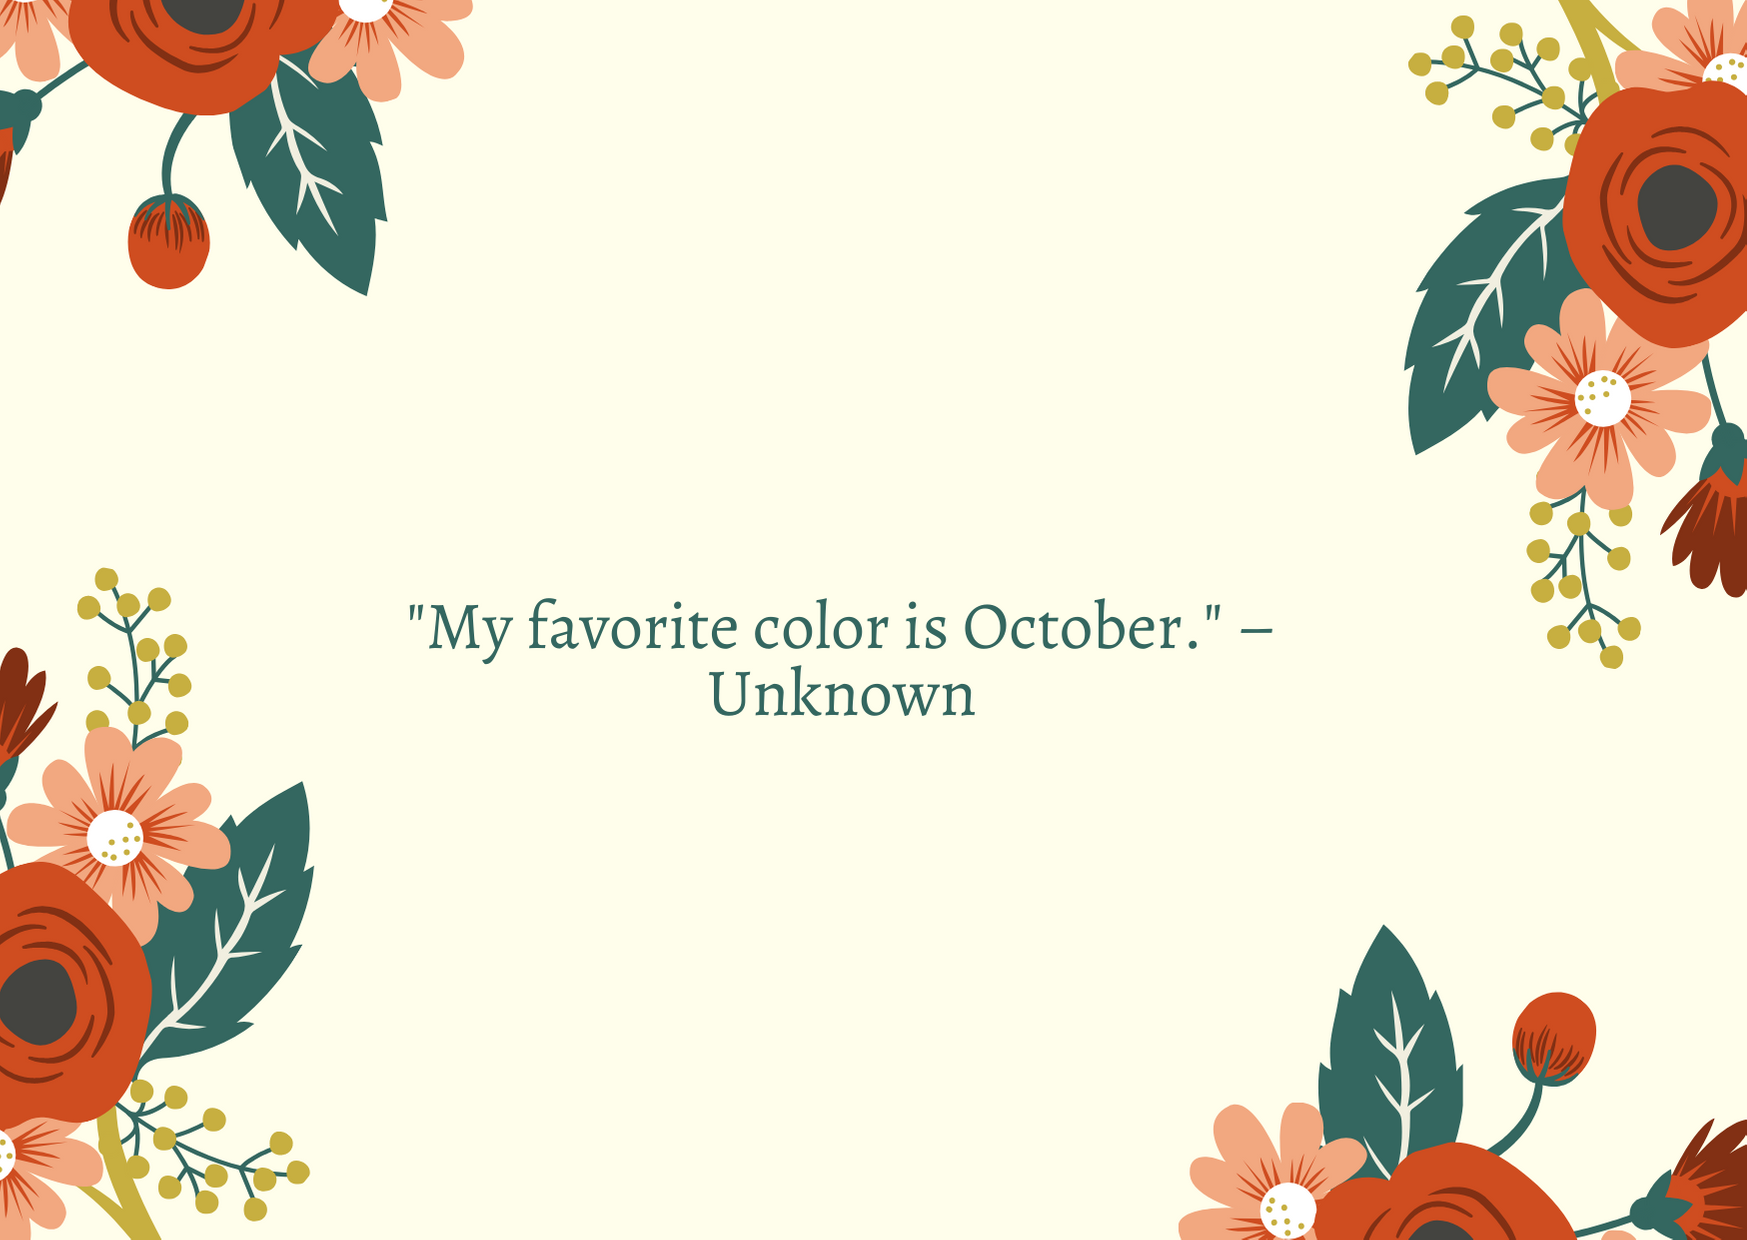 """My favorite color is October."" – Unknown"